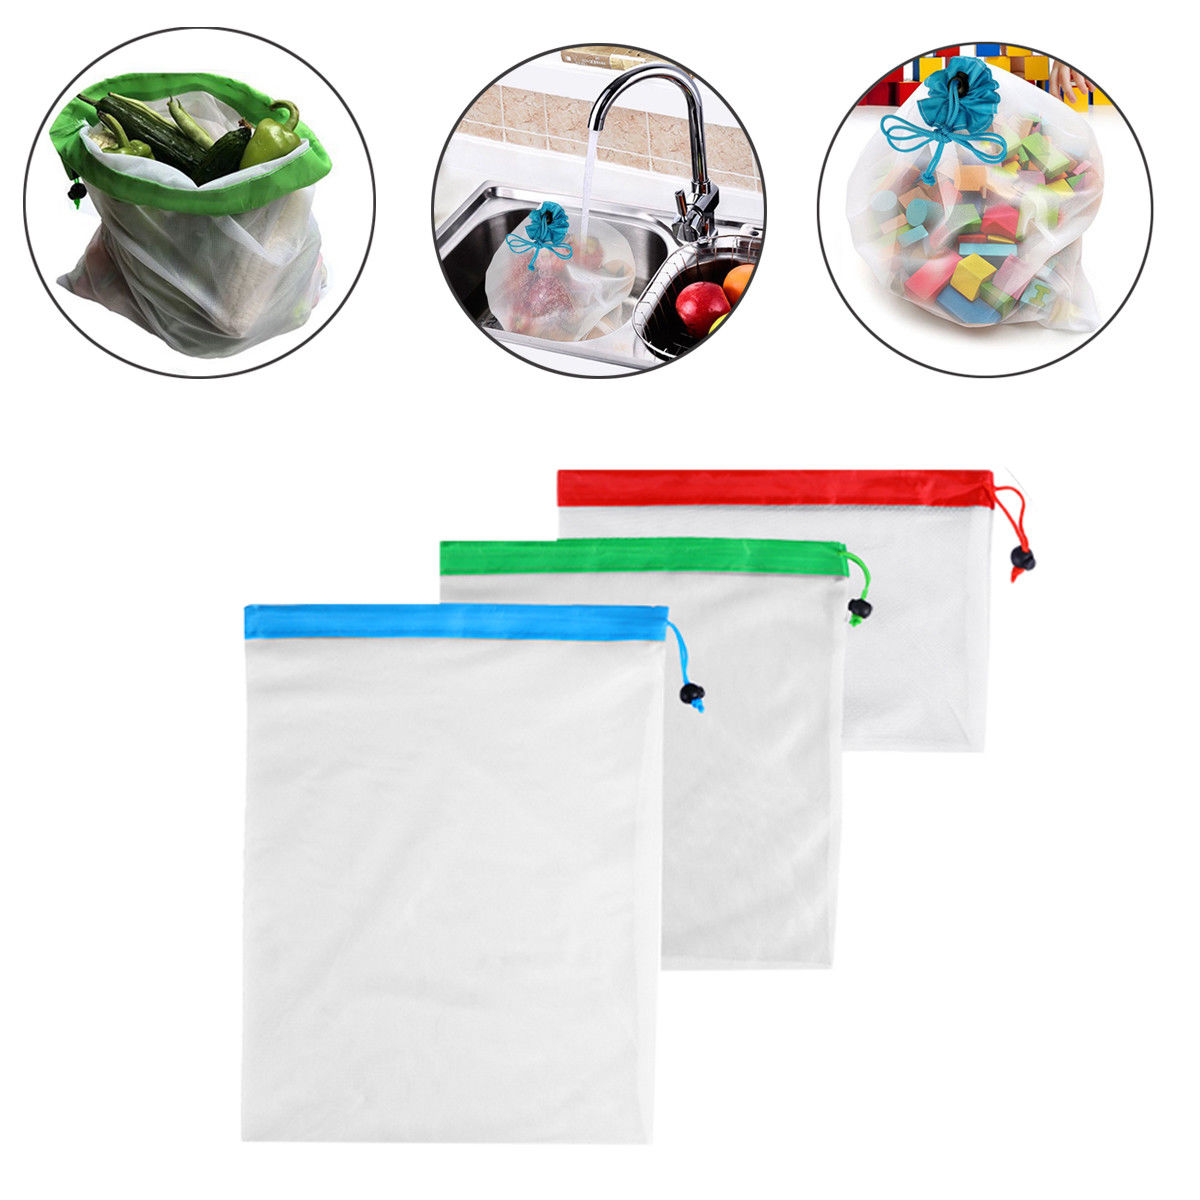 Reusable Mesh Produce Bags Washable Bags for Grocery Shopping Storage Fruit Vegetable Organizer Storage Bag Eco friendly